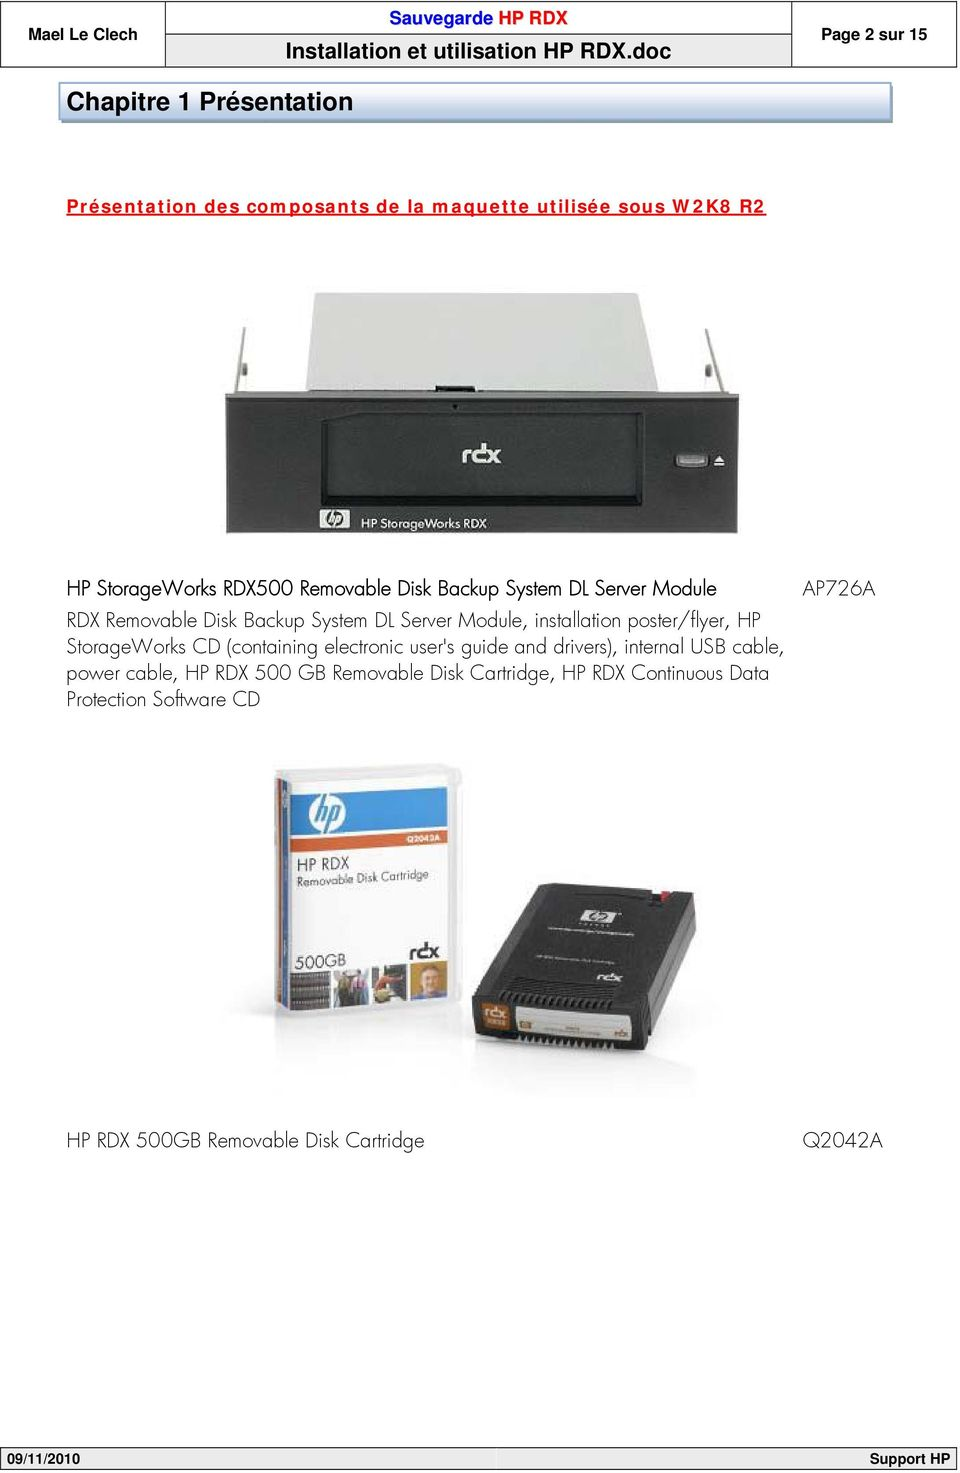 poster/flyer, HP StorageWorks CD (containing electronic user's guide and drivers), internal USB cable, power cable, HP RDX